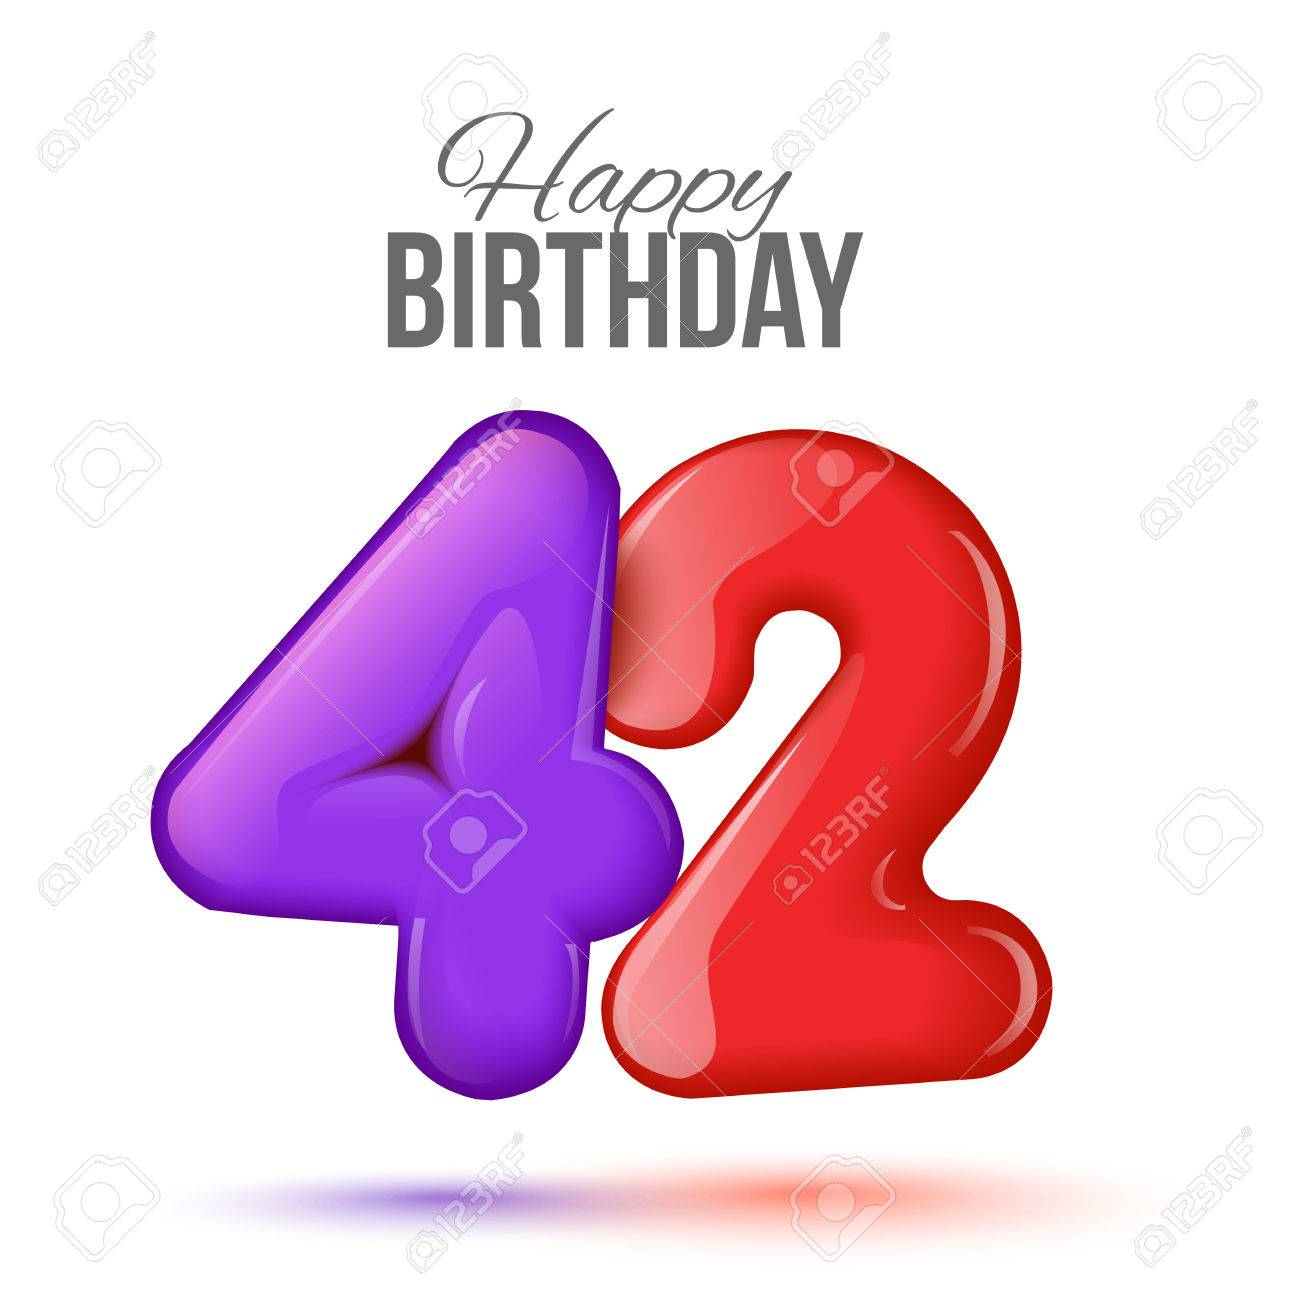 Forty two birthday greeting card template with 3d shiny number forty forty two birthday greeting card template with 3d shiny number forty two balloon on white background stopboris Images